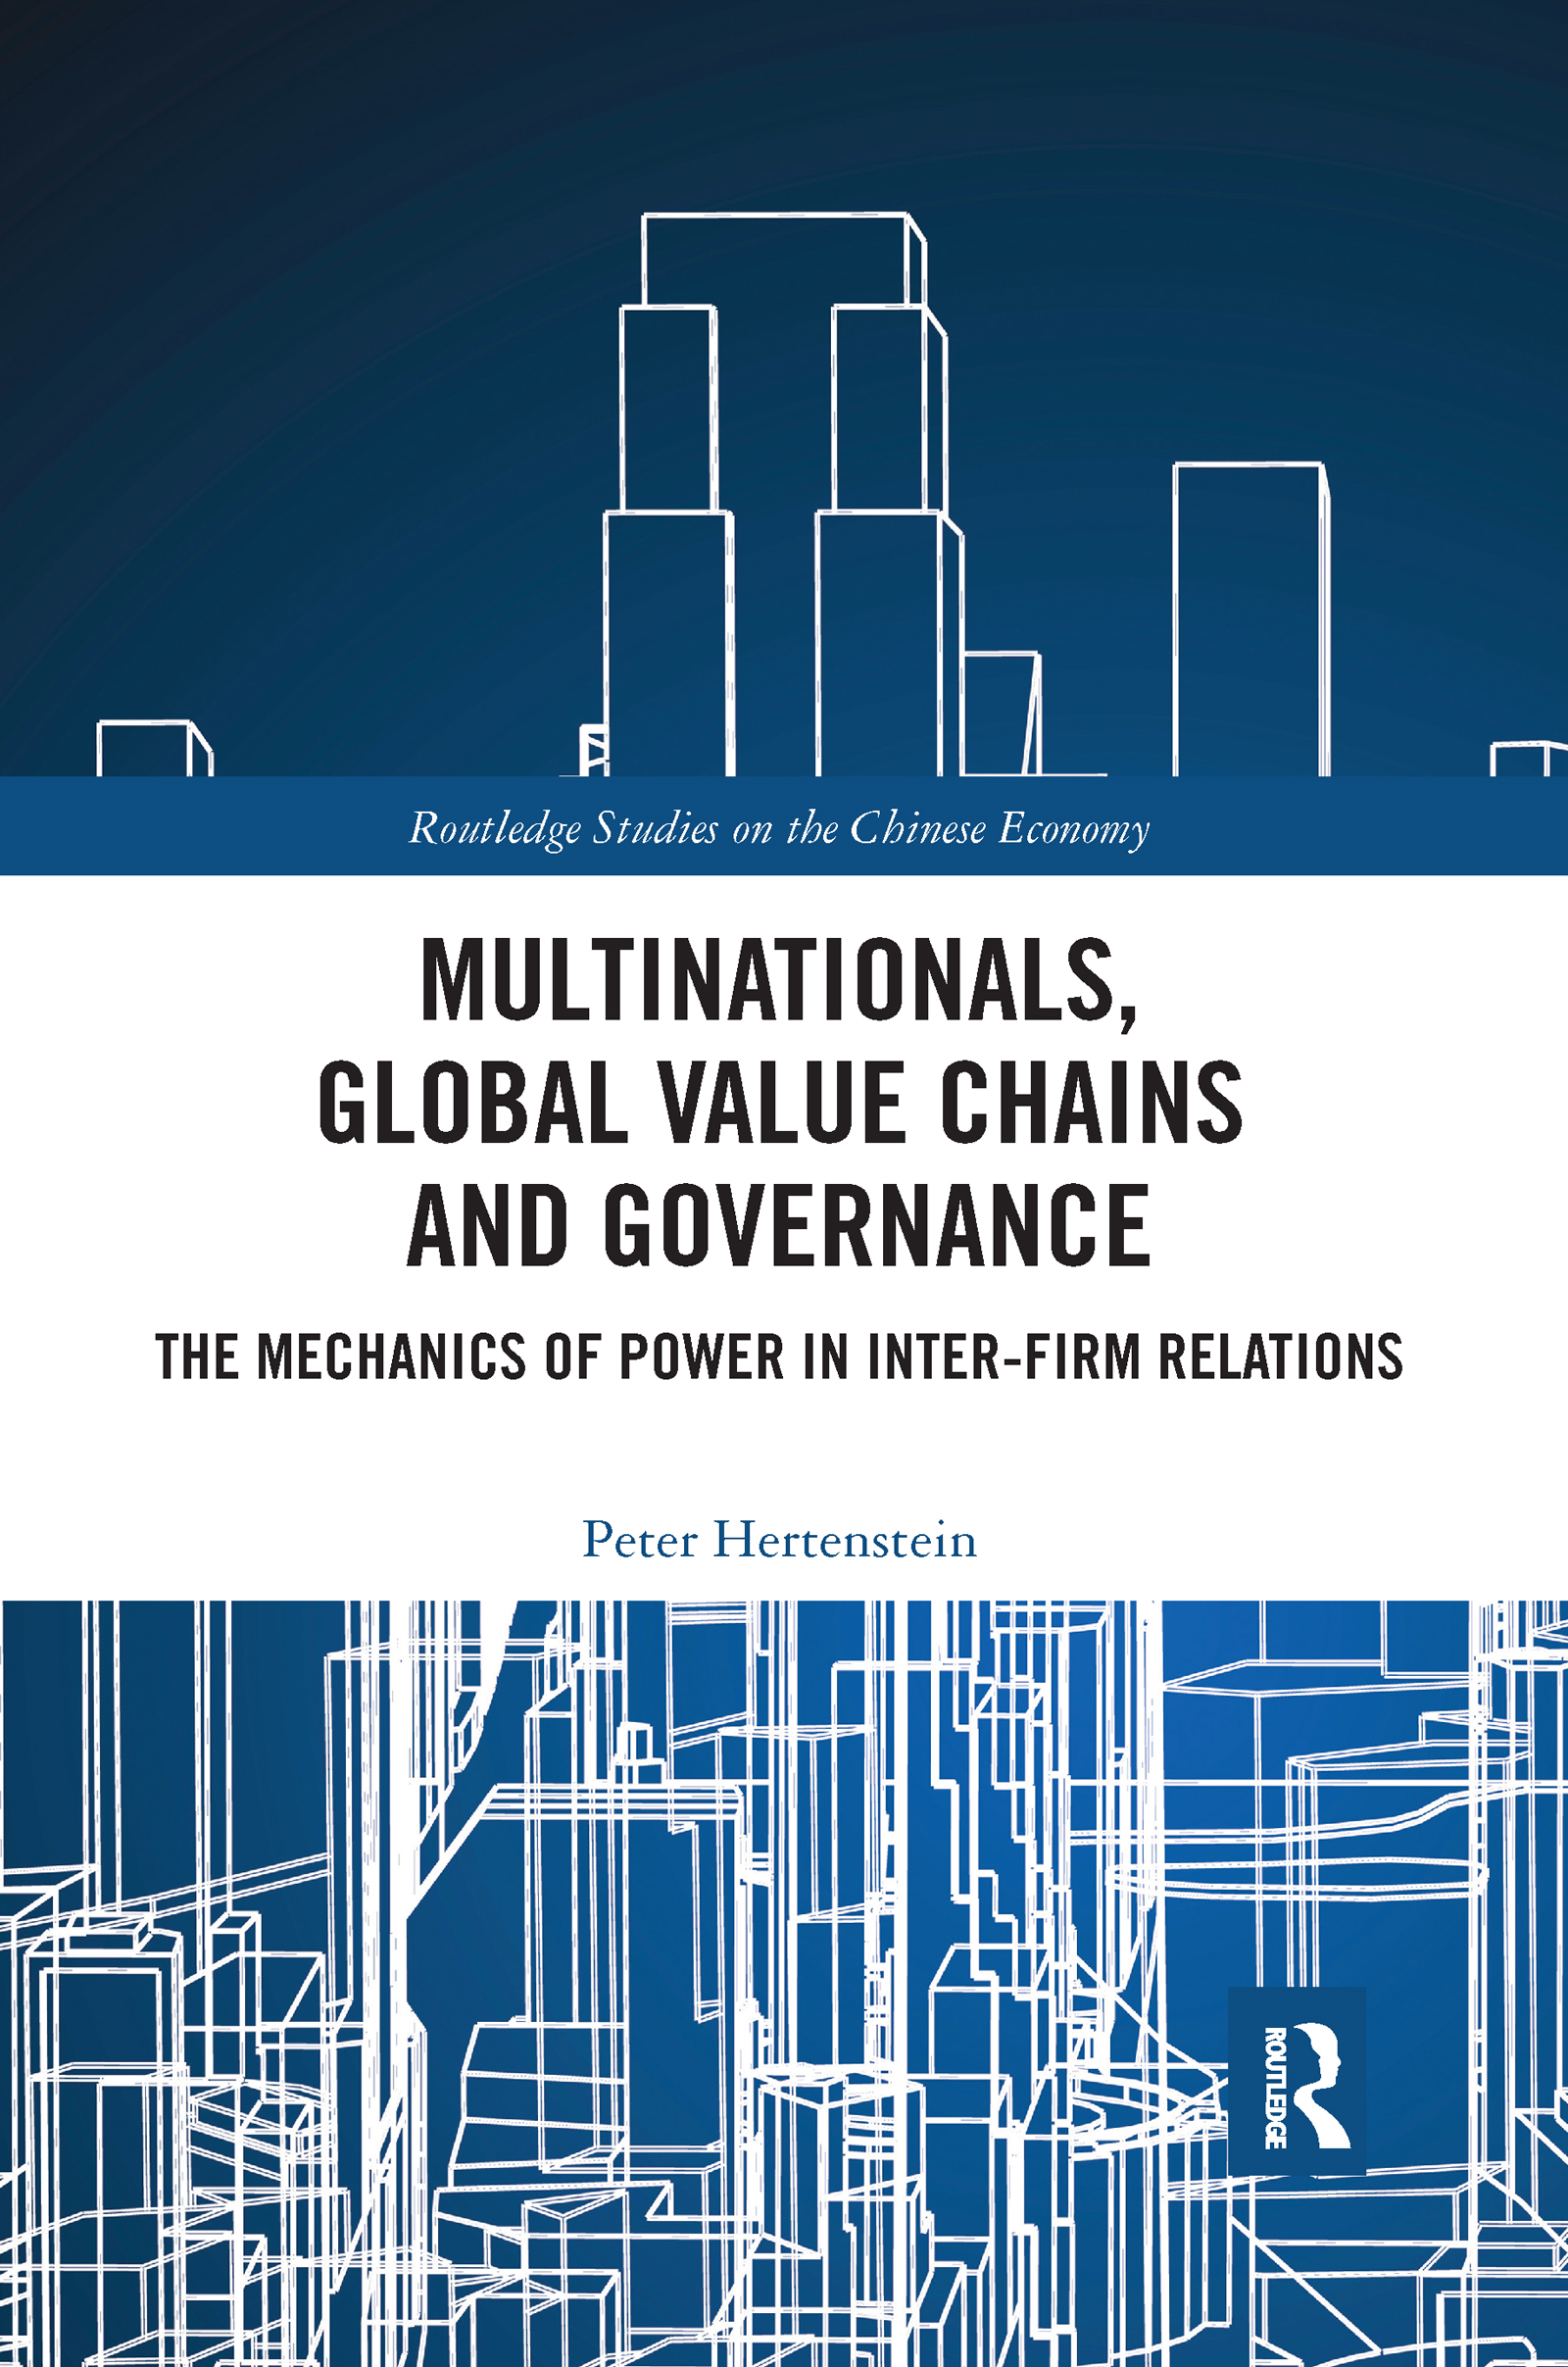 Multinationals, Global Value Chains and Governance